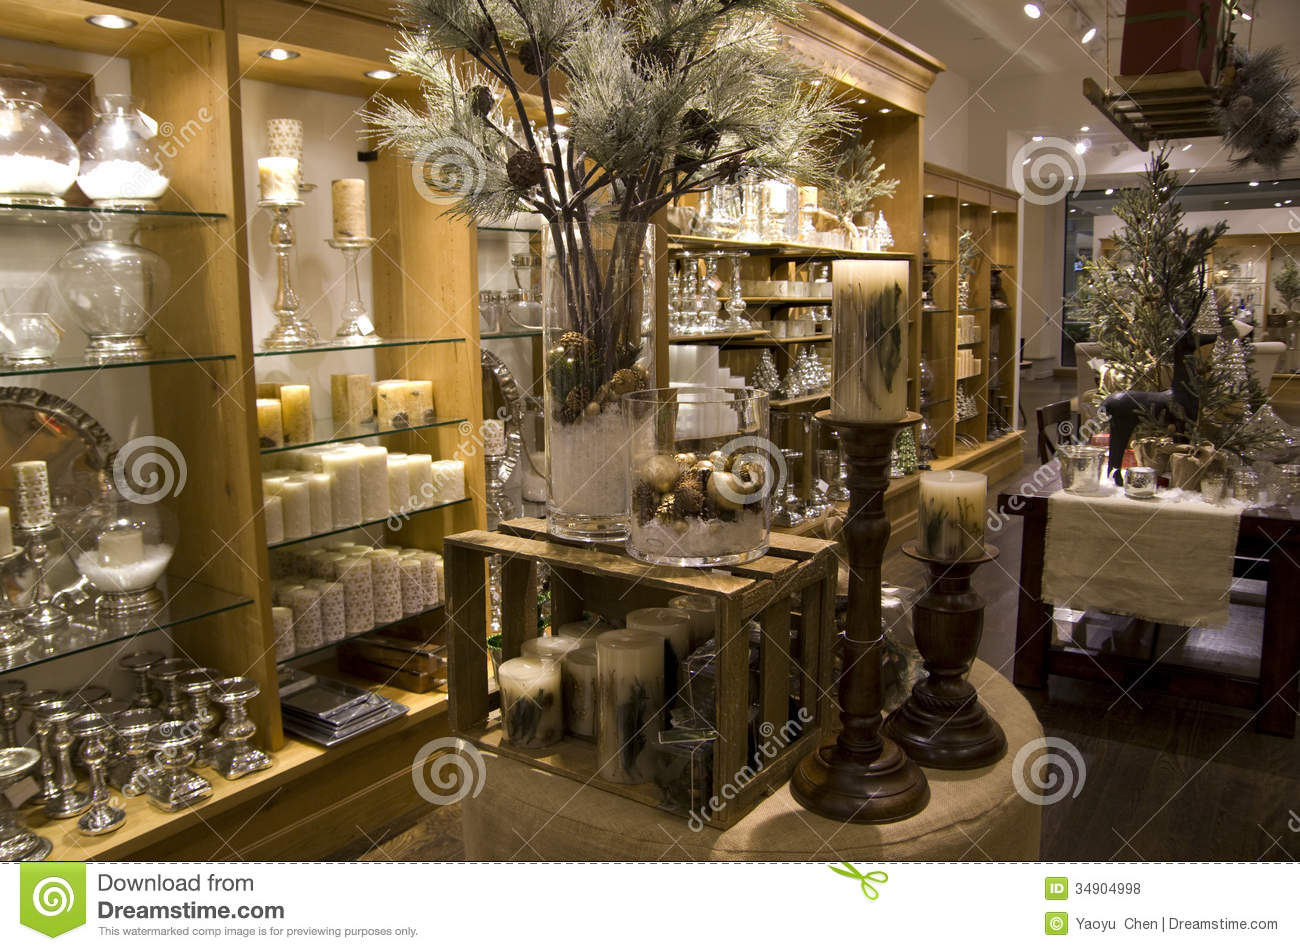 Home decor store stock photo image of lighting shelves 34904998 - Home furnishing stores ...